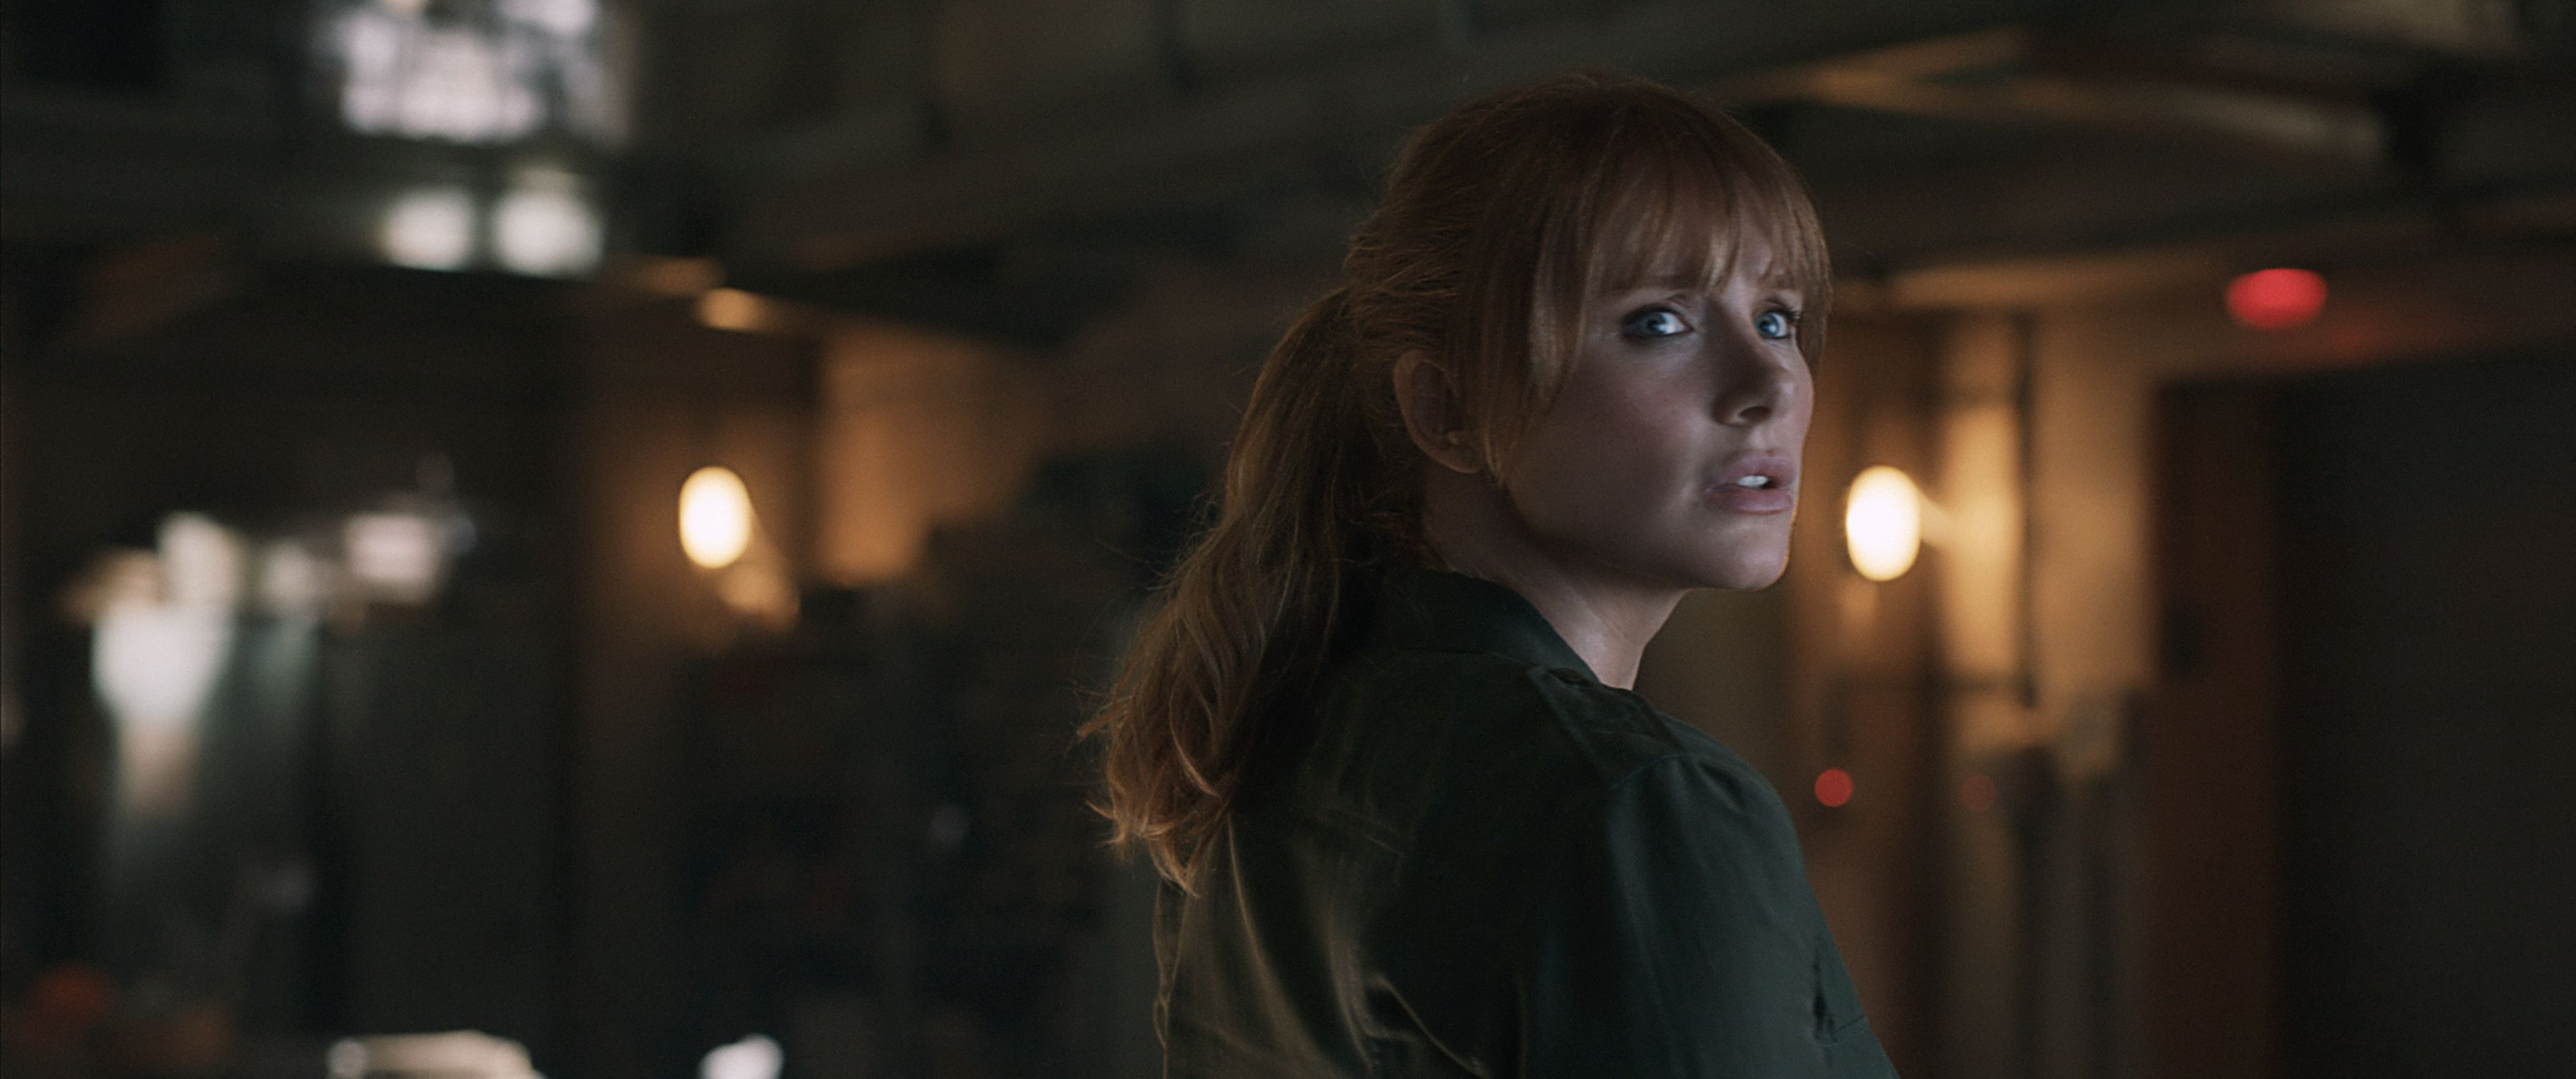 New Jurassic World 2 Trailer Teases the End of the Park